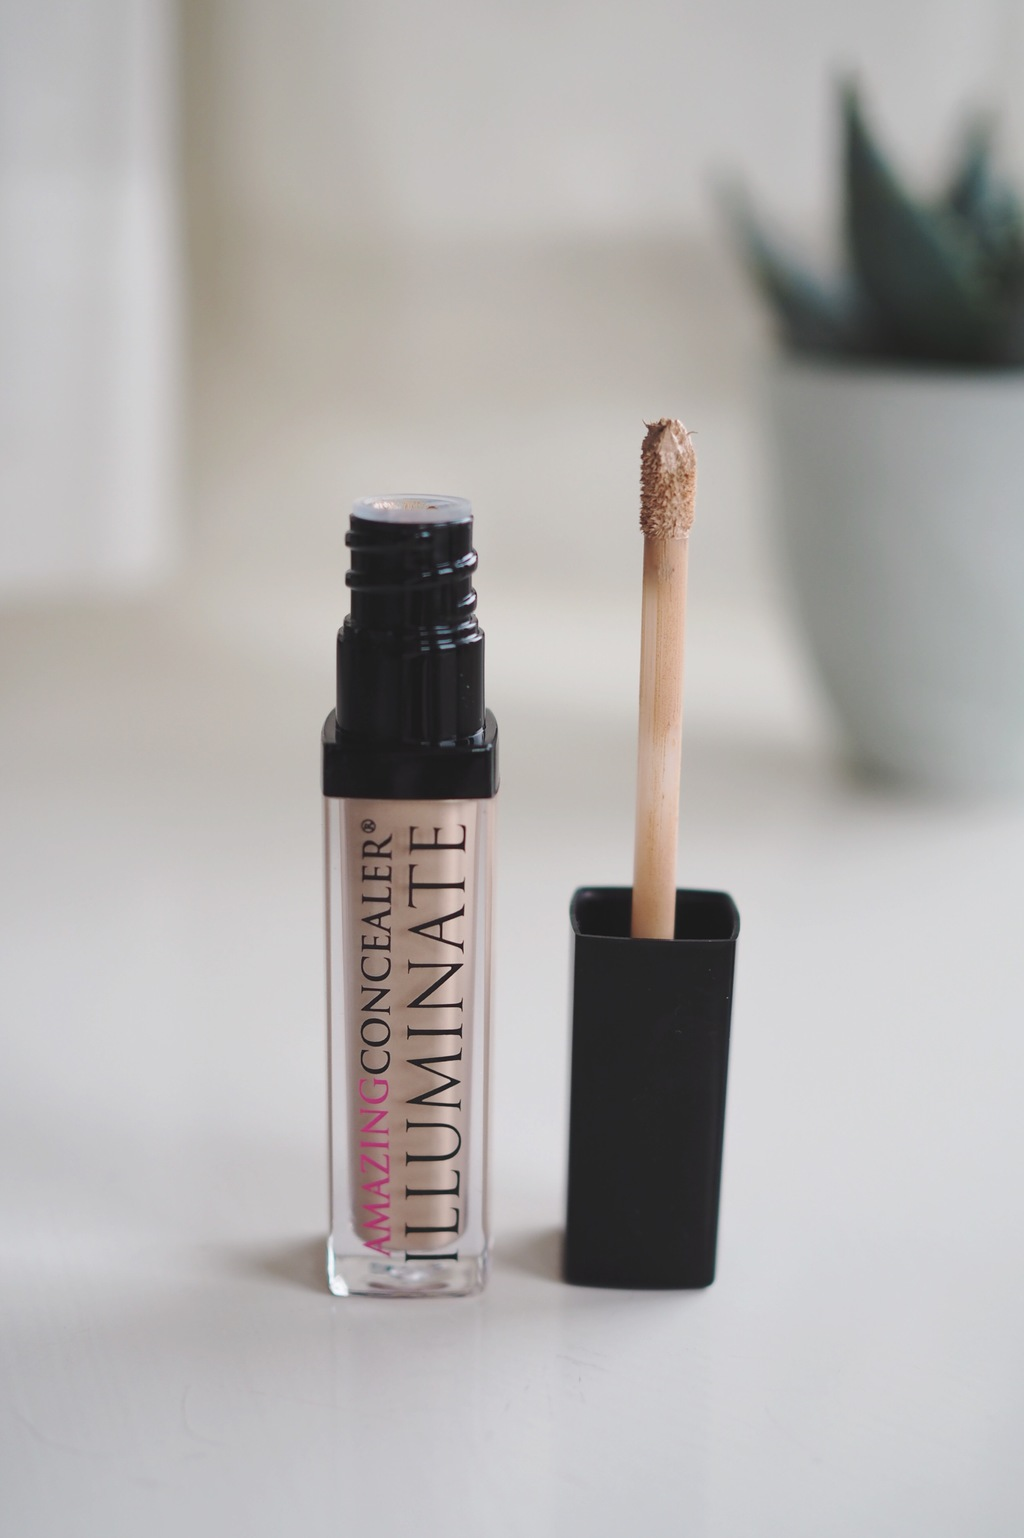 TOP 5 HIGH COVERAGE / LONG WEAR / CREAMY CONCEALERS